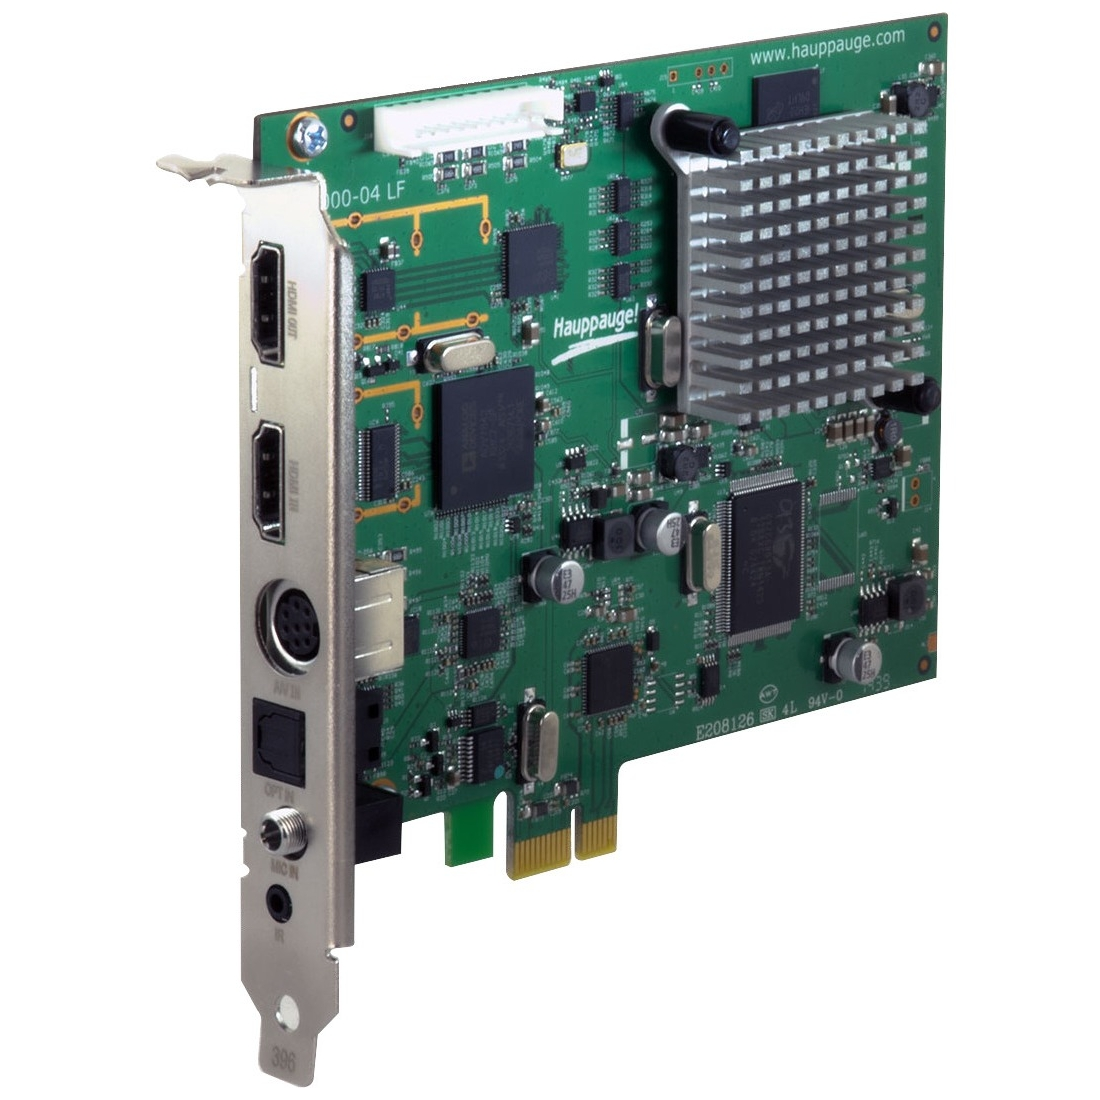 Hauppauge Colossus 2 PCI Express High Definition Video Re...